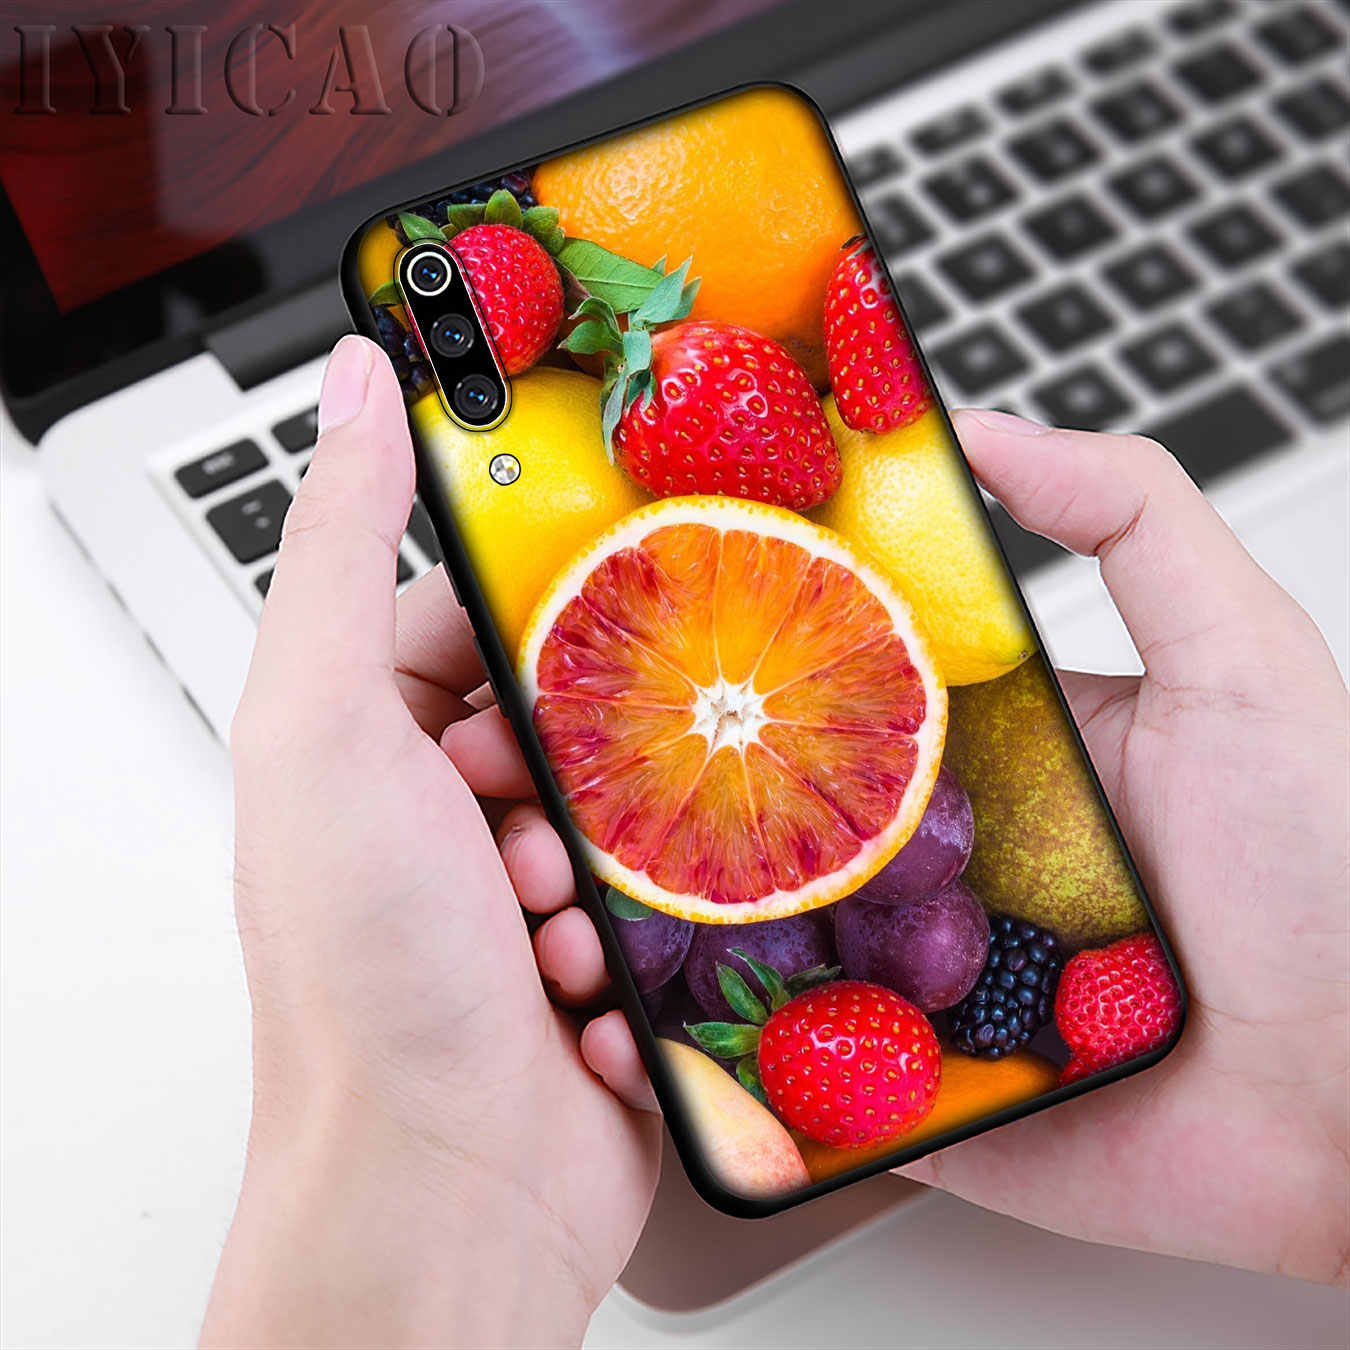 IYICAO zomer fruit Zachte Siliconen Telefoon Case voor Xiao mi mi 9 9 t A3 PRO CC9 CC9E 8 A2 lite A1 6 6X 5X pocophone f1 MAX 3 Cover